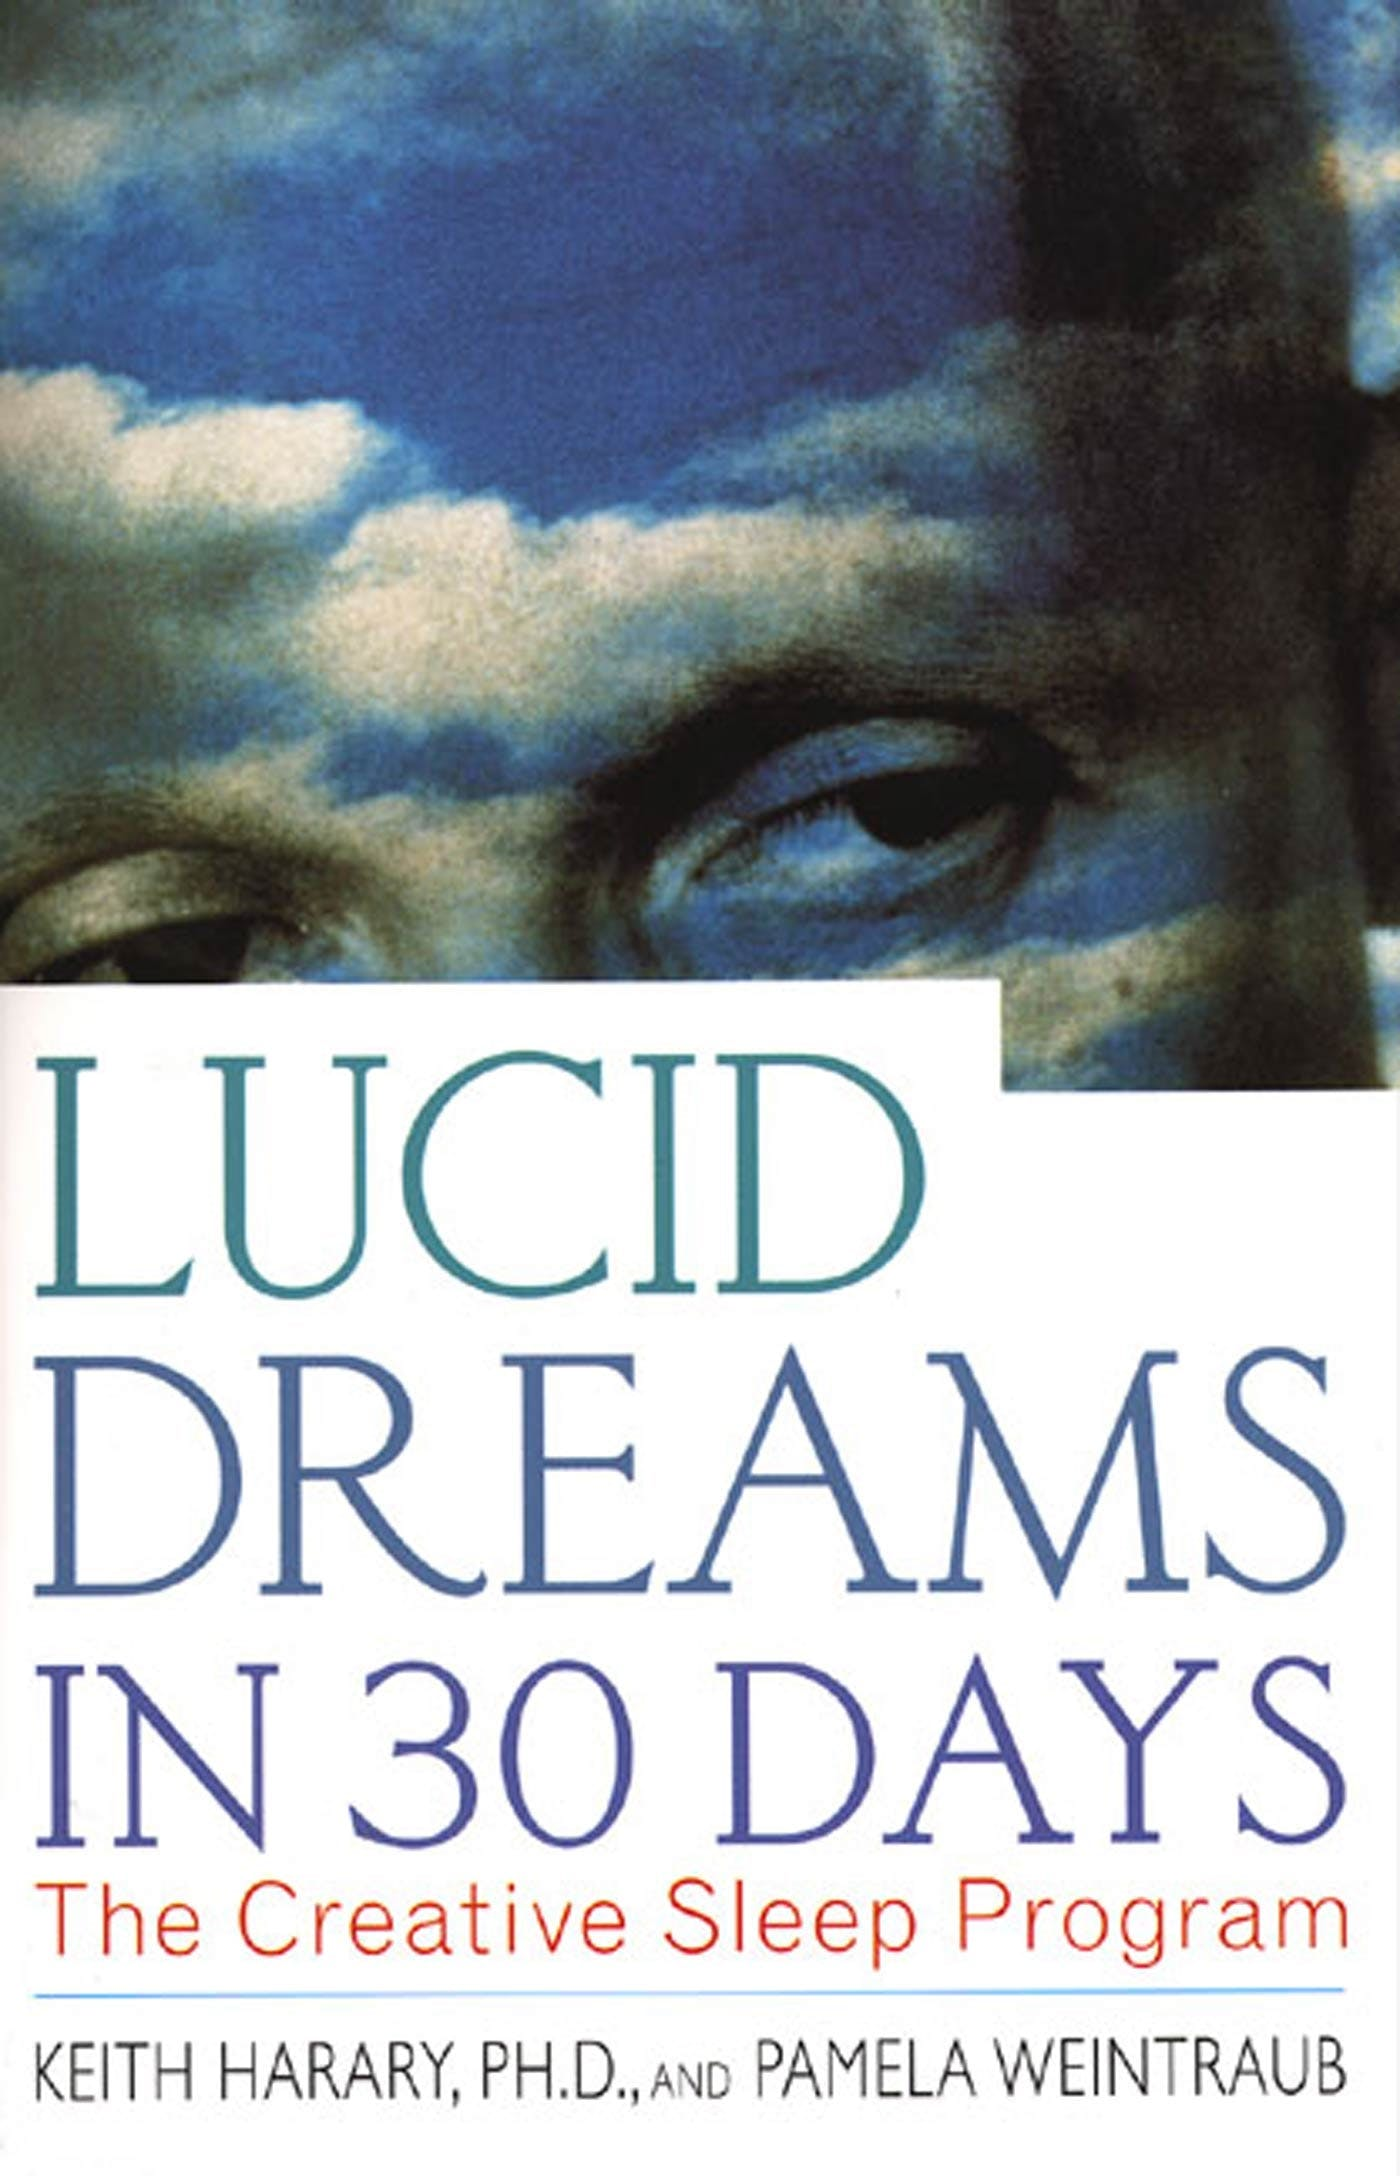 Image of Lucid Dreams in 30 Days